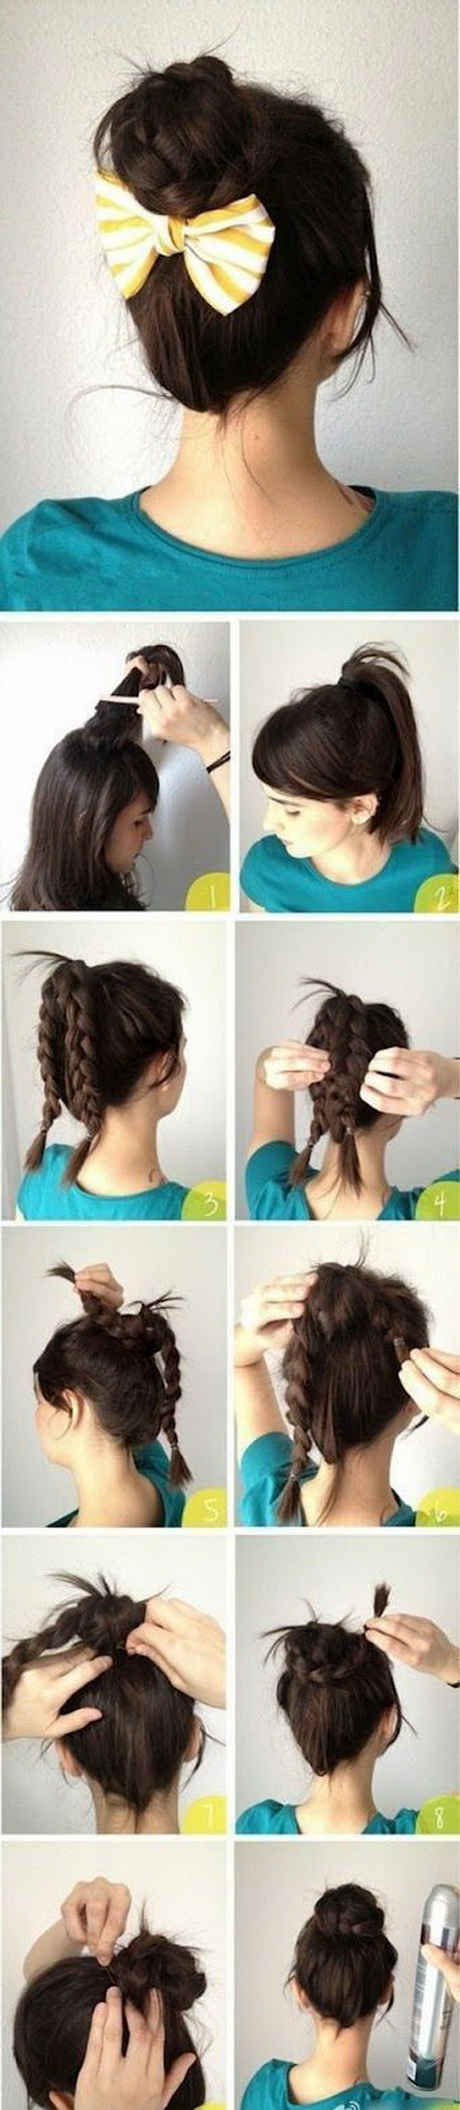 Hairstyles you can do at home